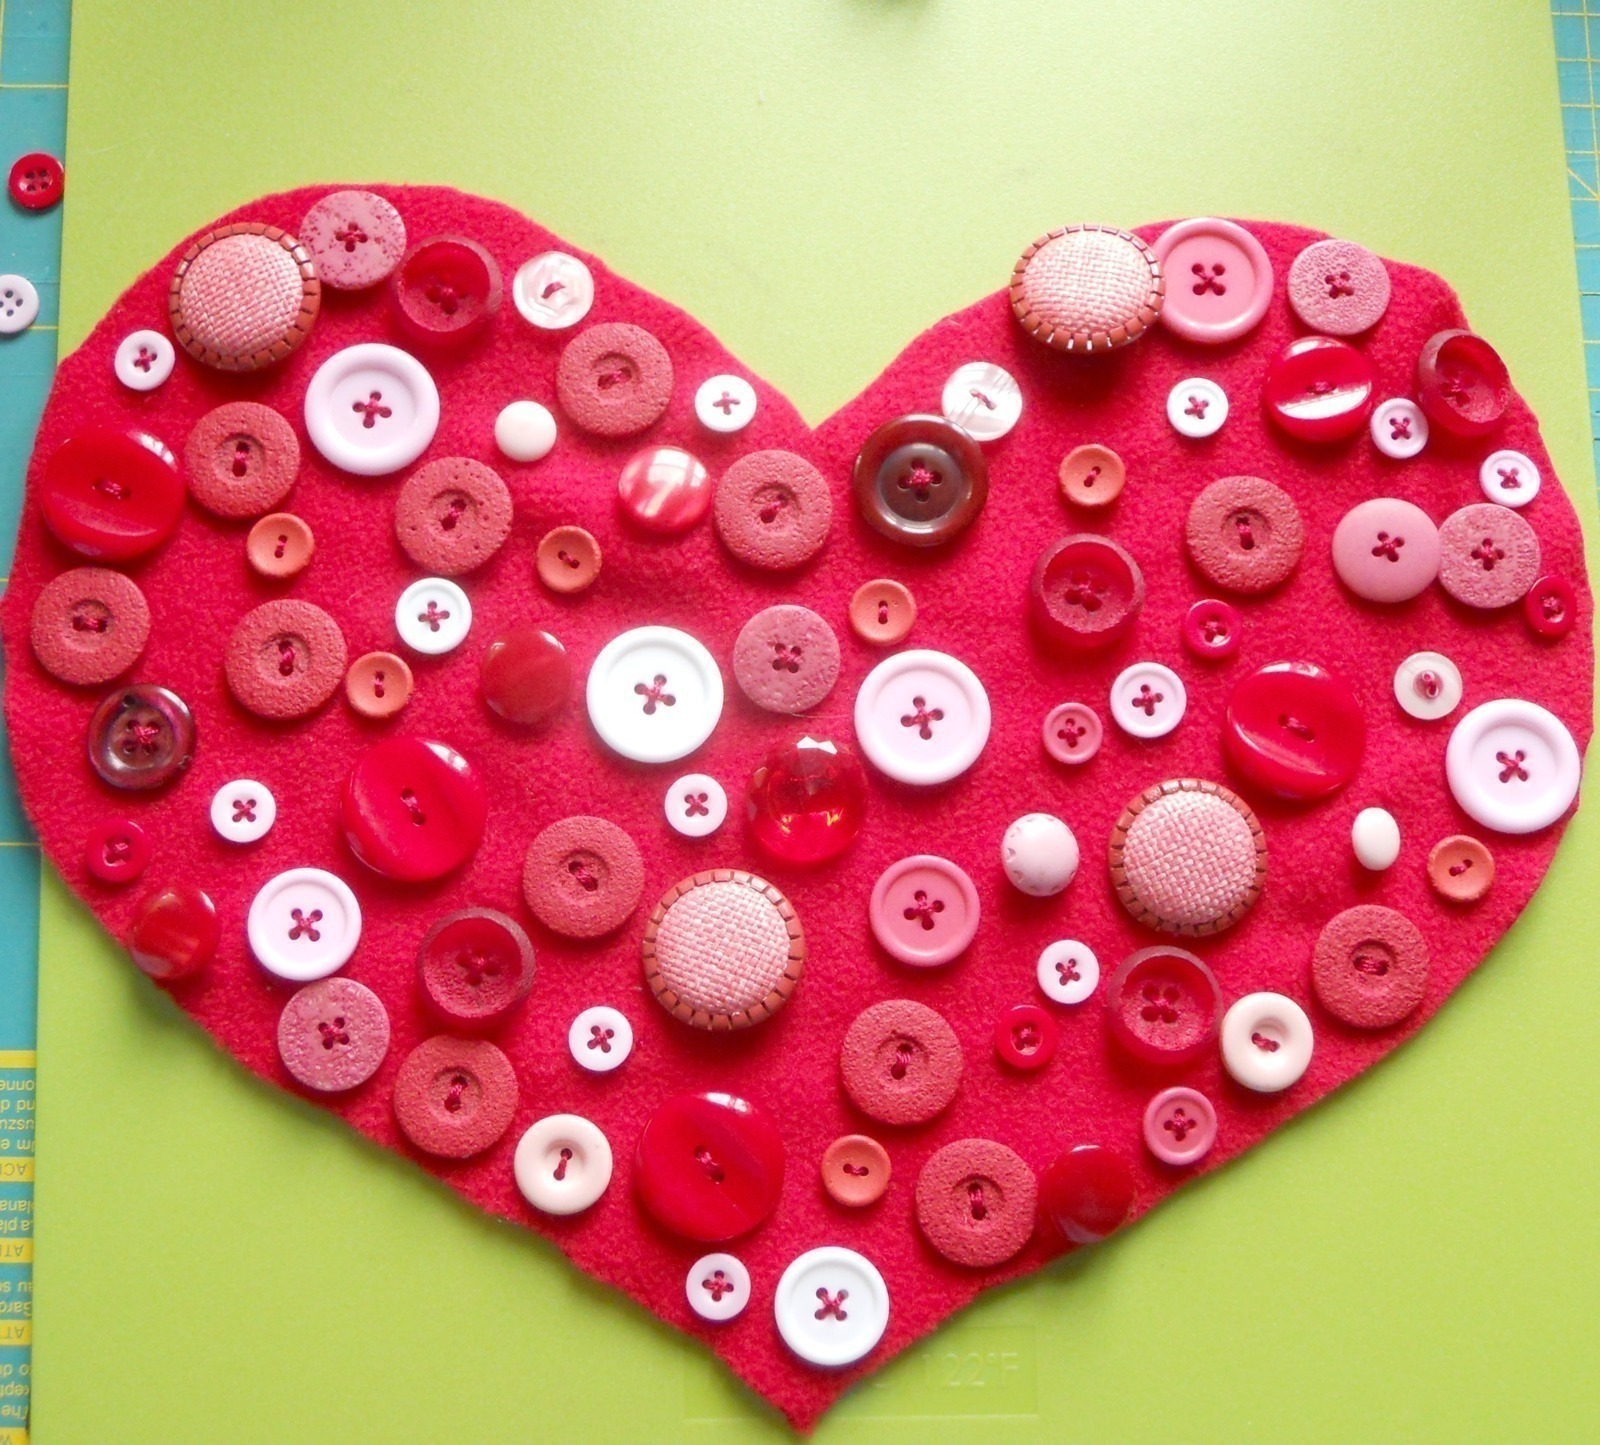 Diy Buttons Heart Pillow · How To Make A Stitched Cushion